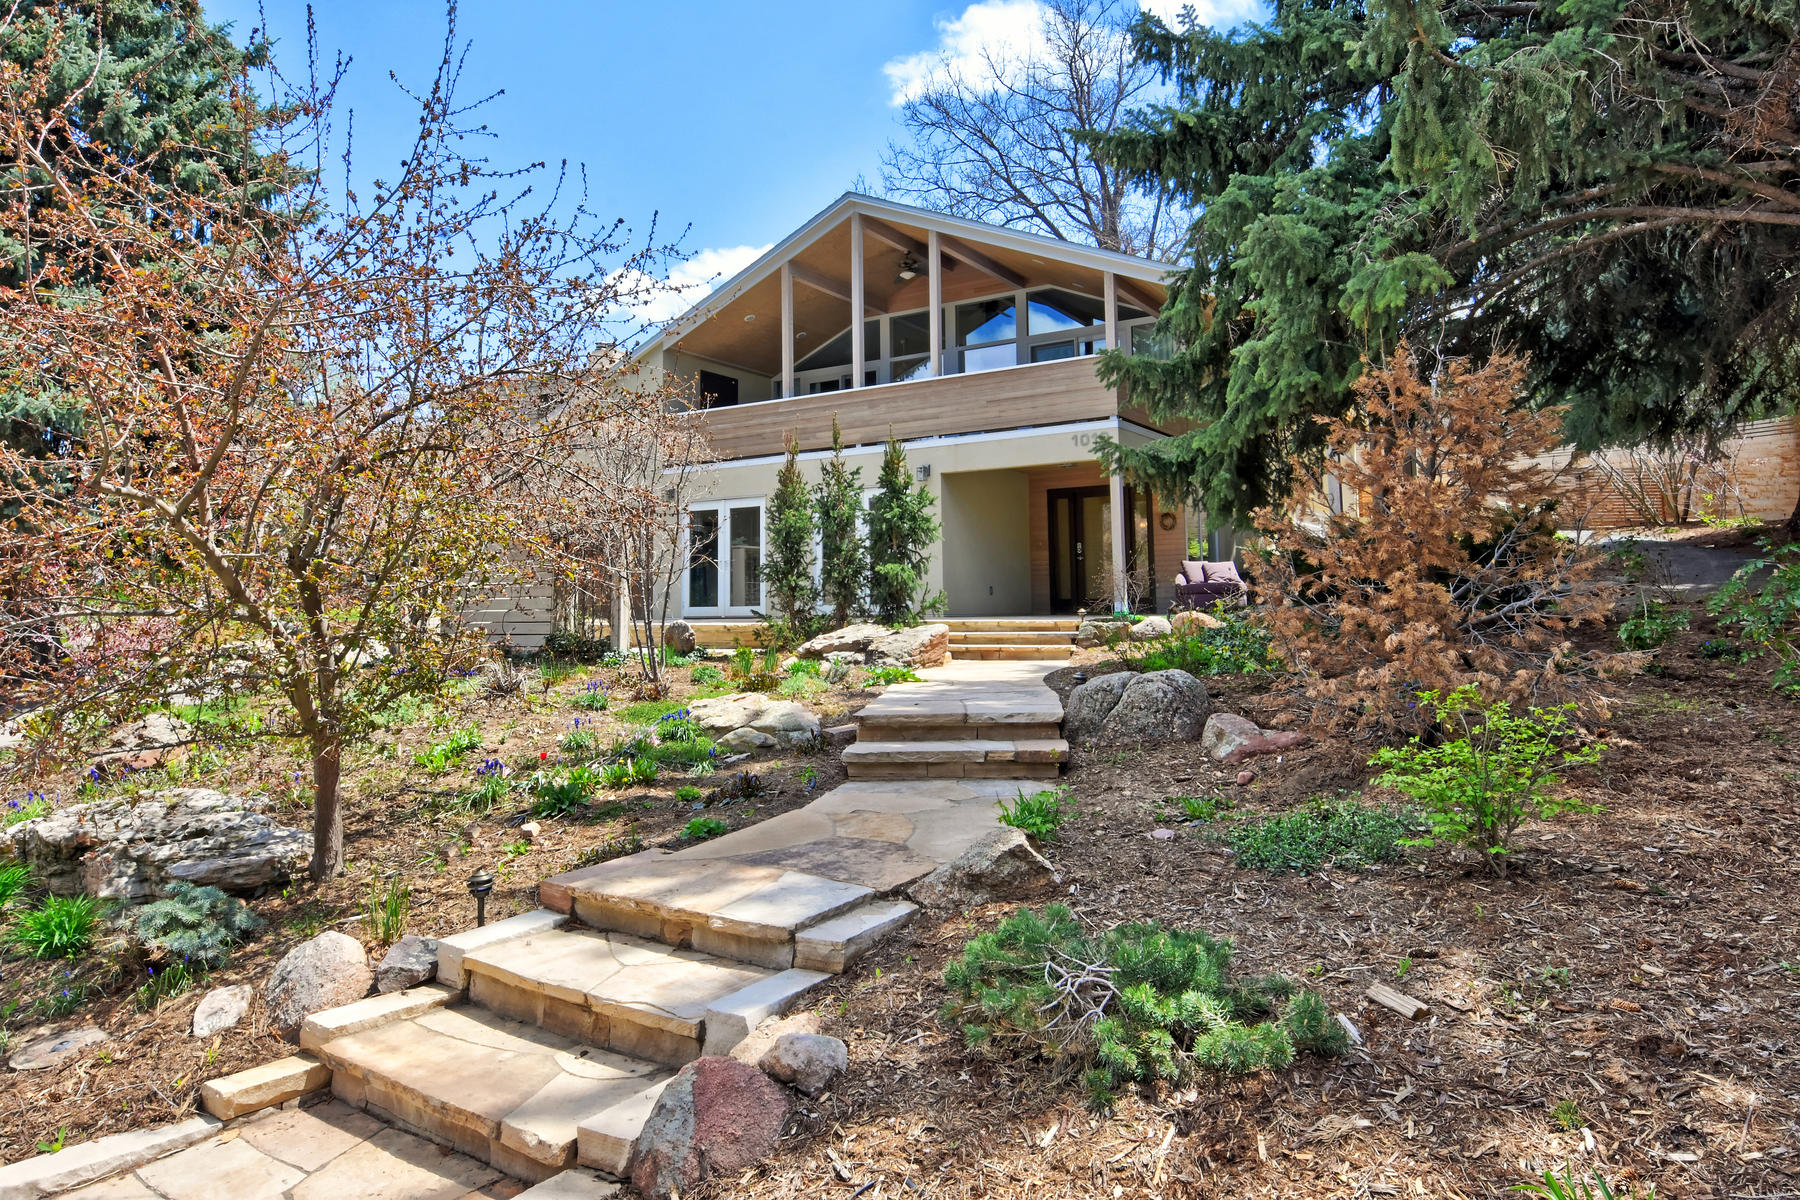 Single Family Homes for Sale at Live The Boulder Lifestyle 1010 Rosehill Dr Boulder, Colorado 80302 United States